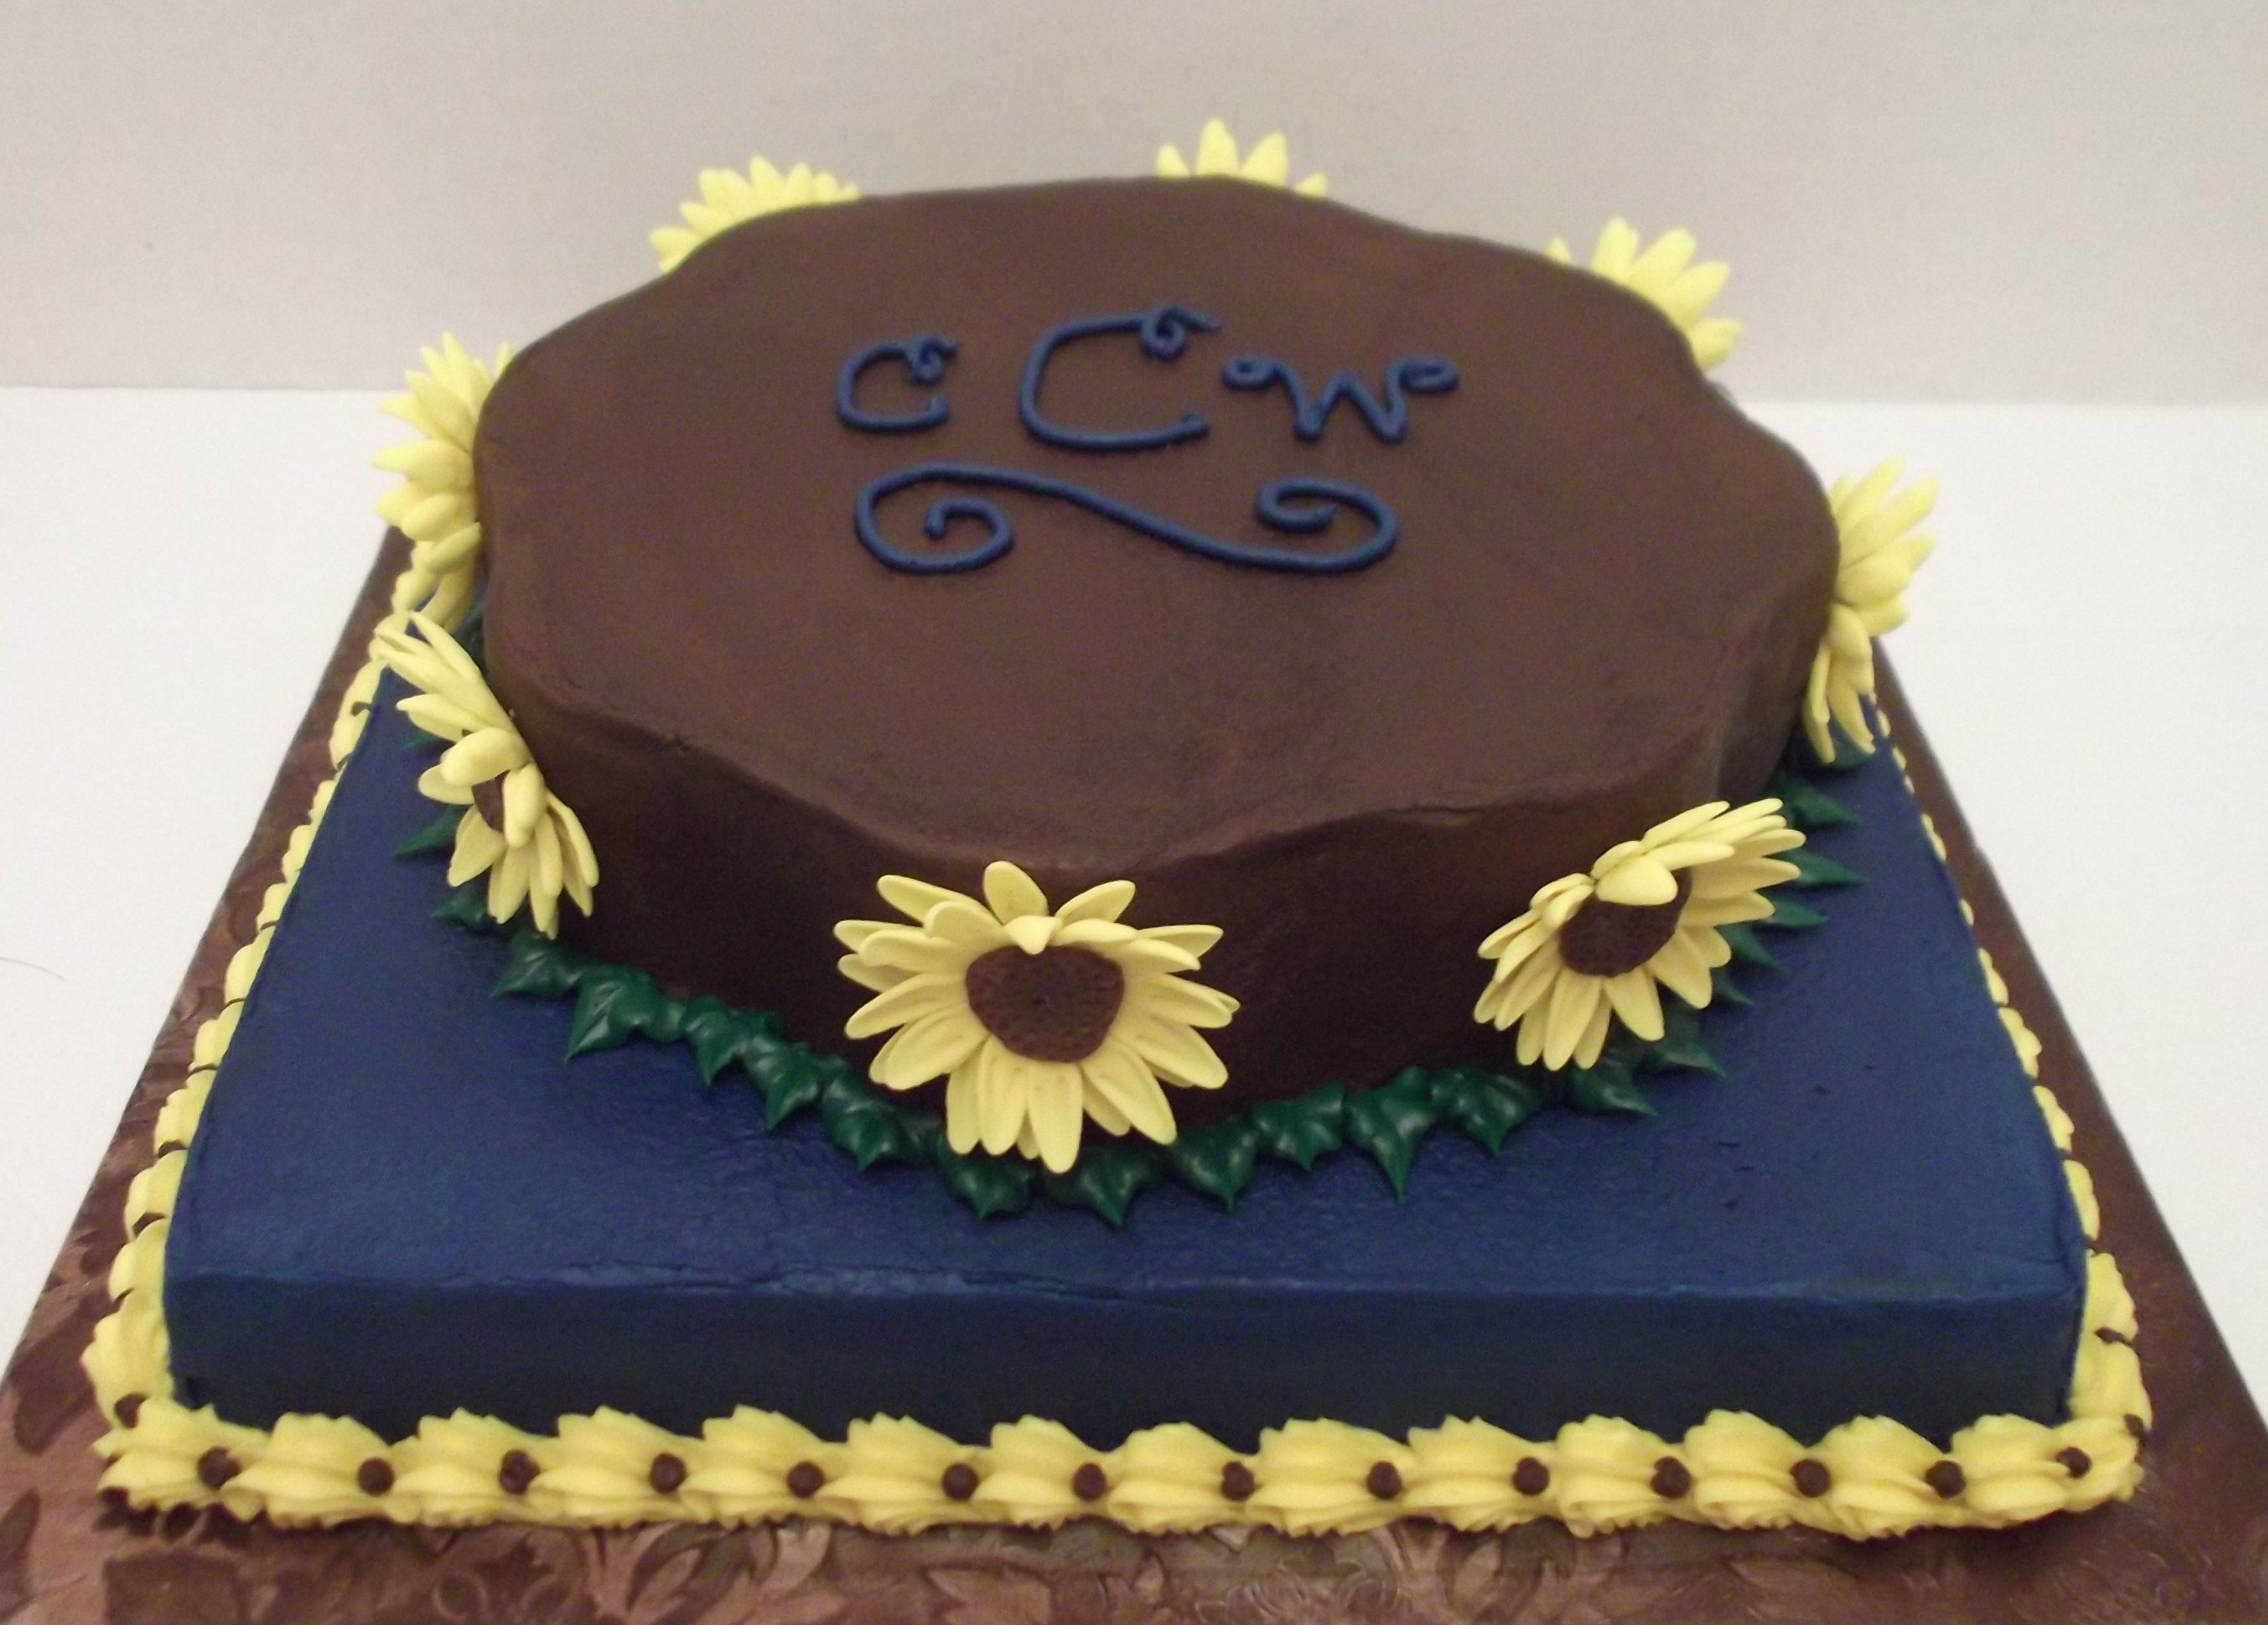 Denim & Sunflowers - 9 inch petal / 10 inch square - white cakes covered and filled with buttercream. Sunflowers are gumpaste. The wedding theme/colors - denim, brown, & sunflowers.